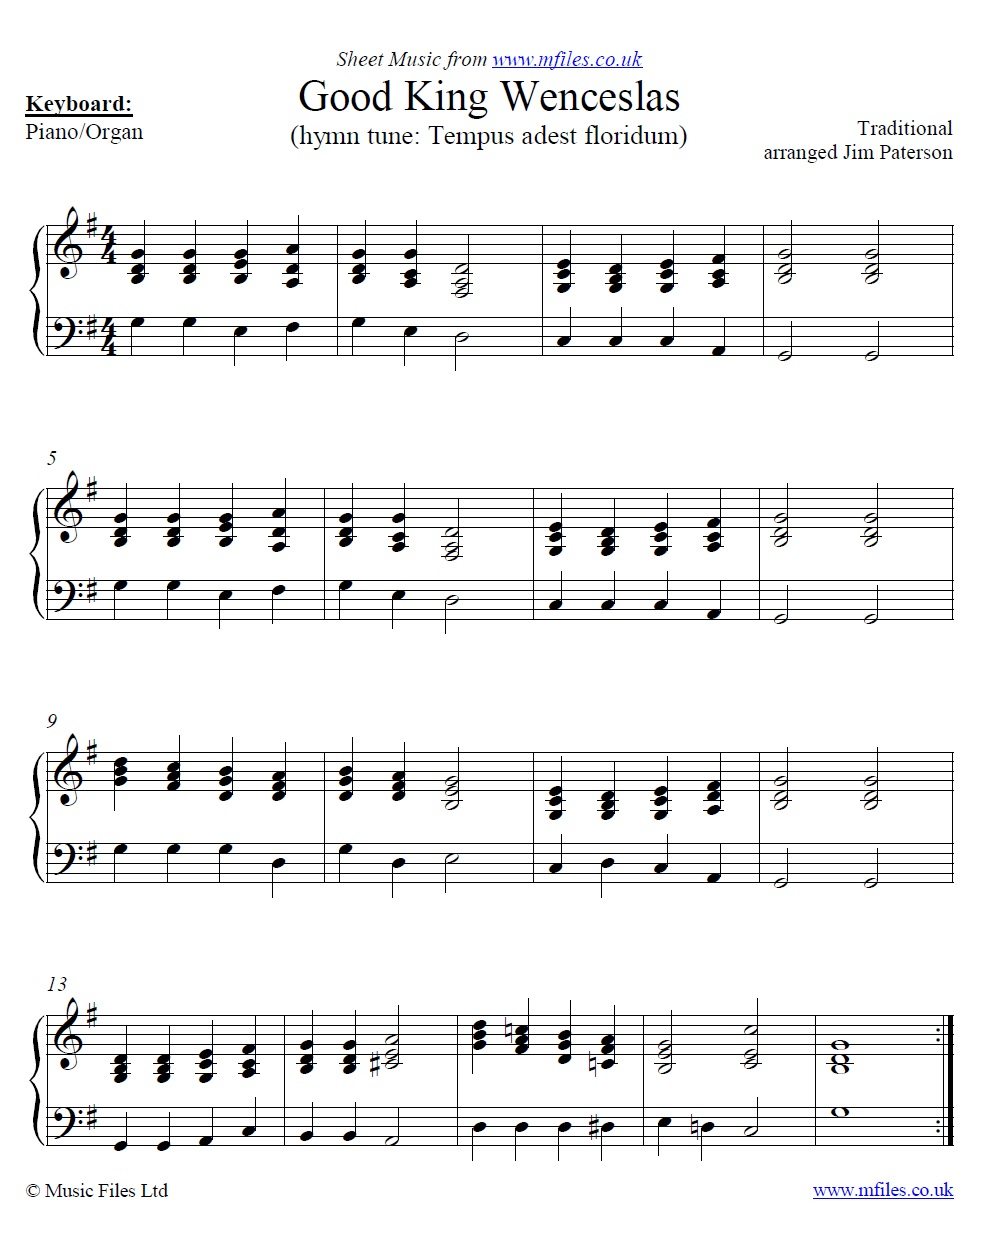 good king wenceslas: a traditional christmas carol arranged for piano by  jim paterson - sheet music  mfiles.co.uk